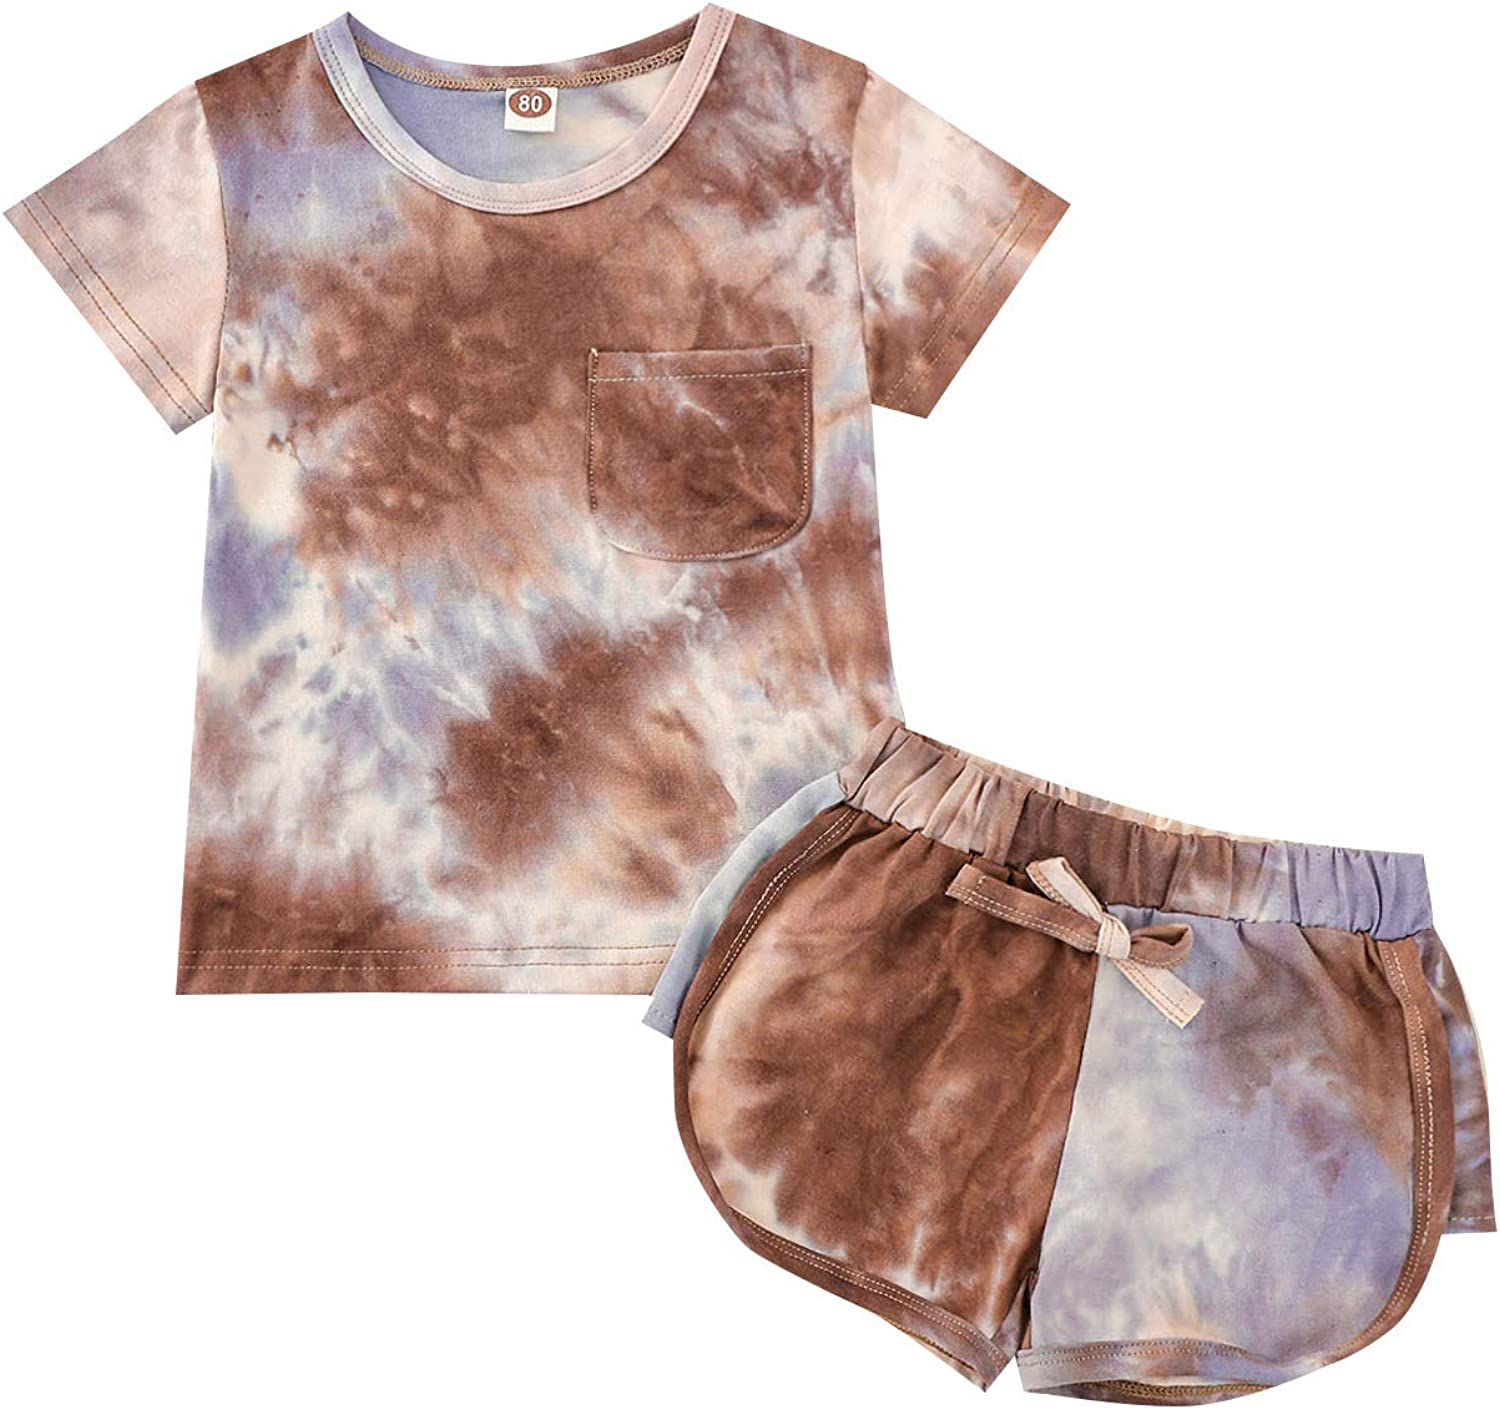 XIAOXUEG Baby Girl Summer Clothes Sets Short Sleeve Dye Special price Sh Large discharge sale T Tie